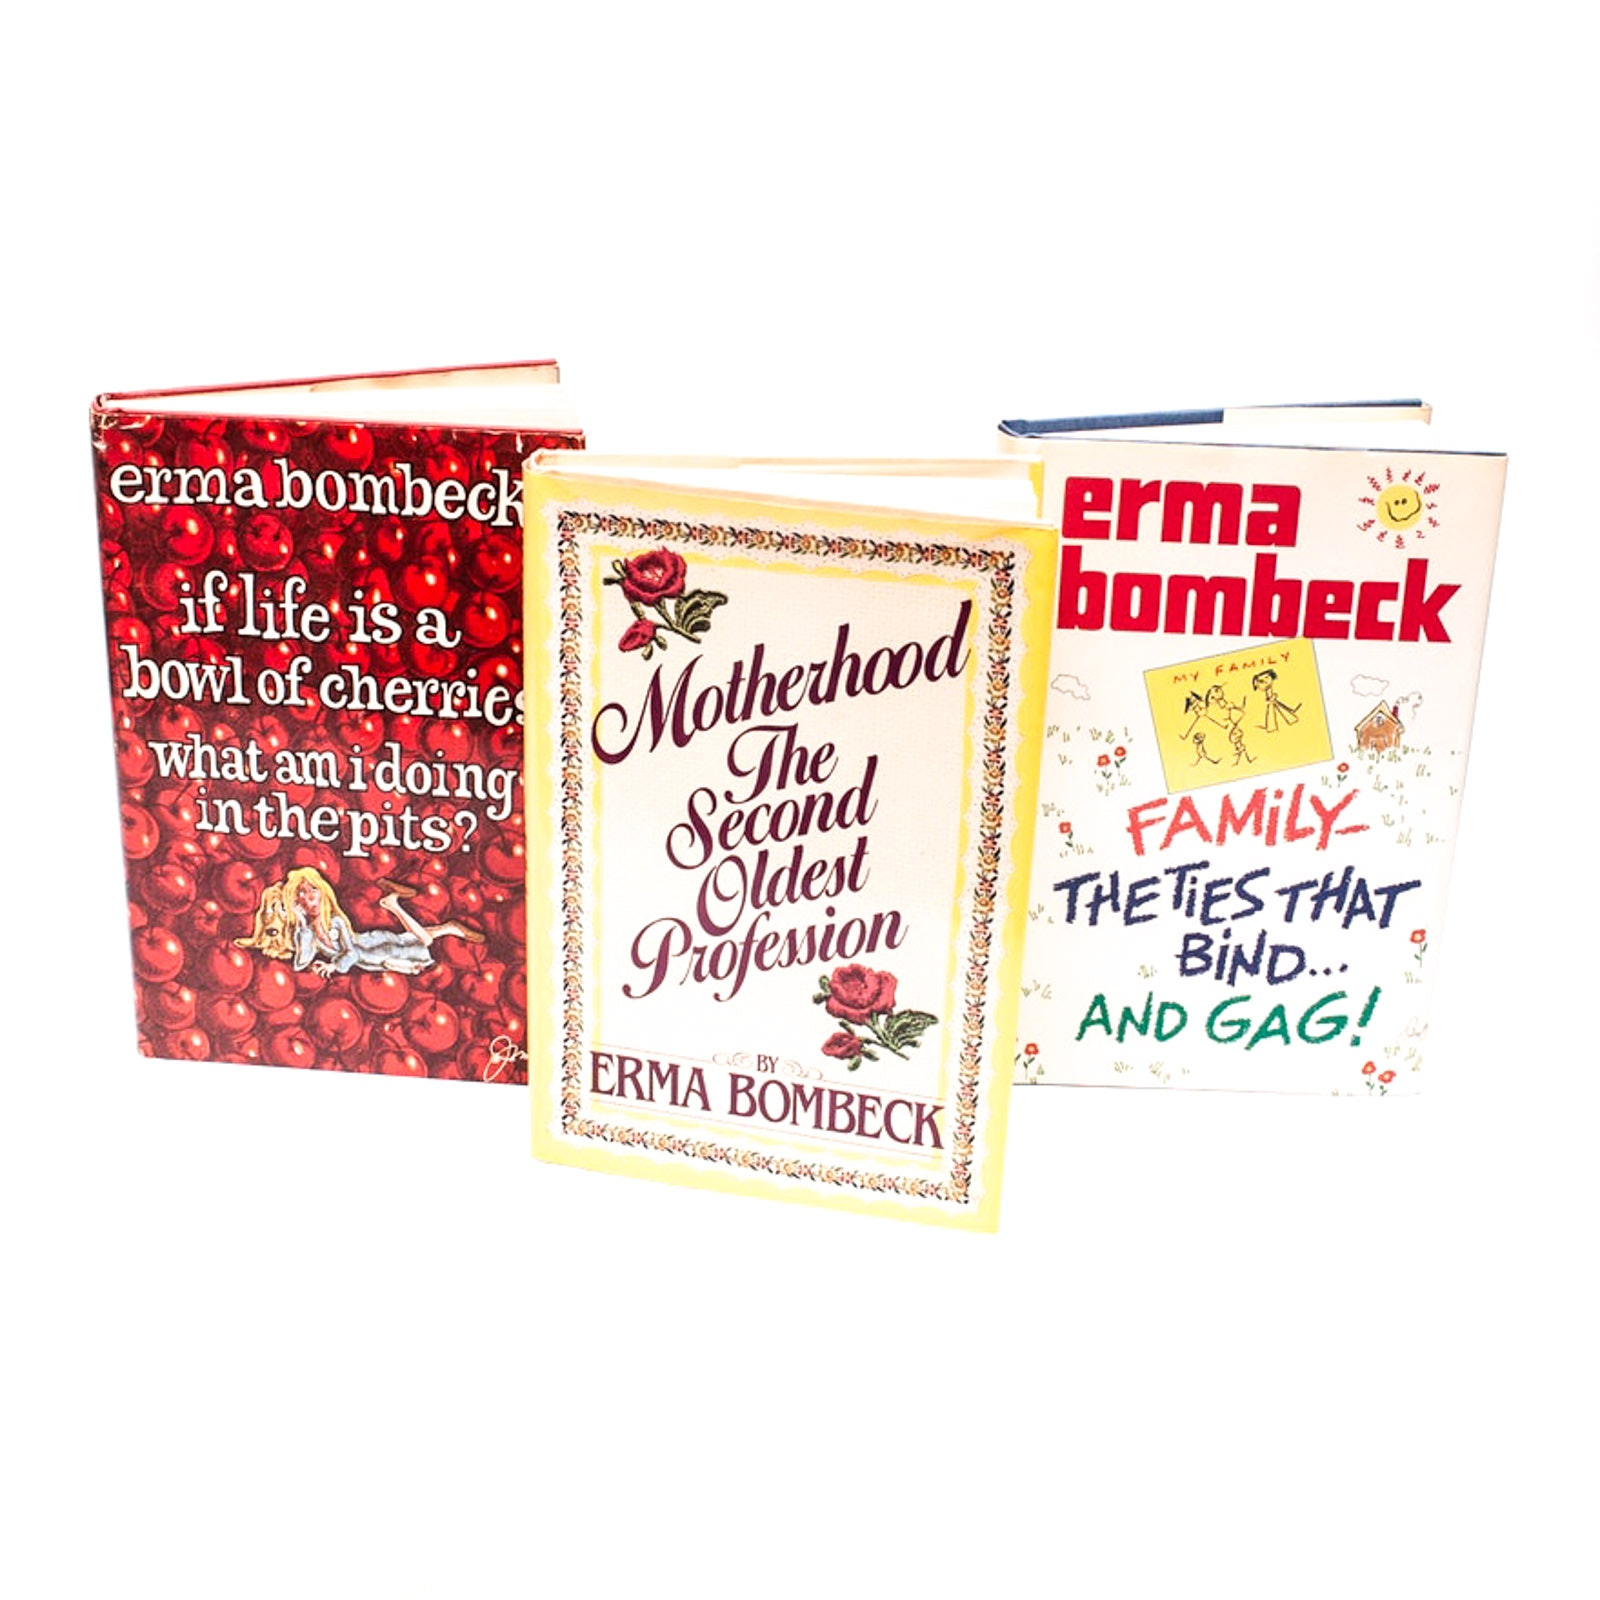 Erma Bombeck Books with Signed First Edition